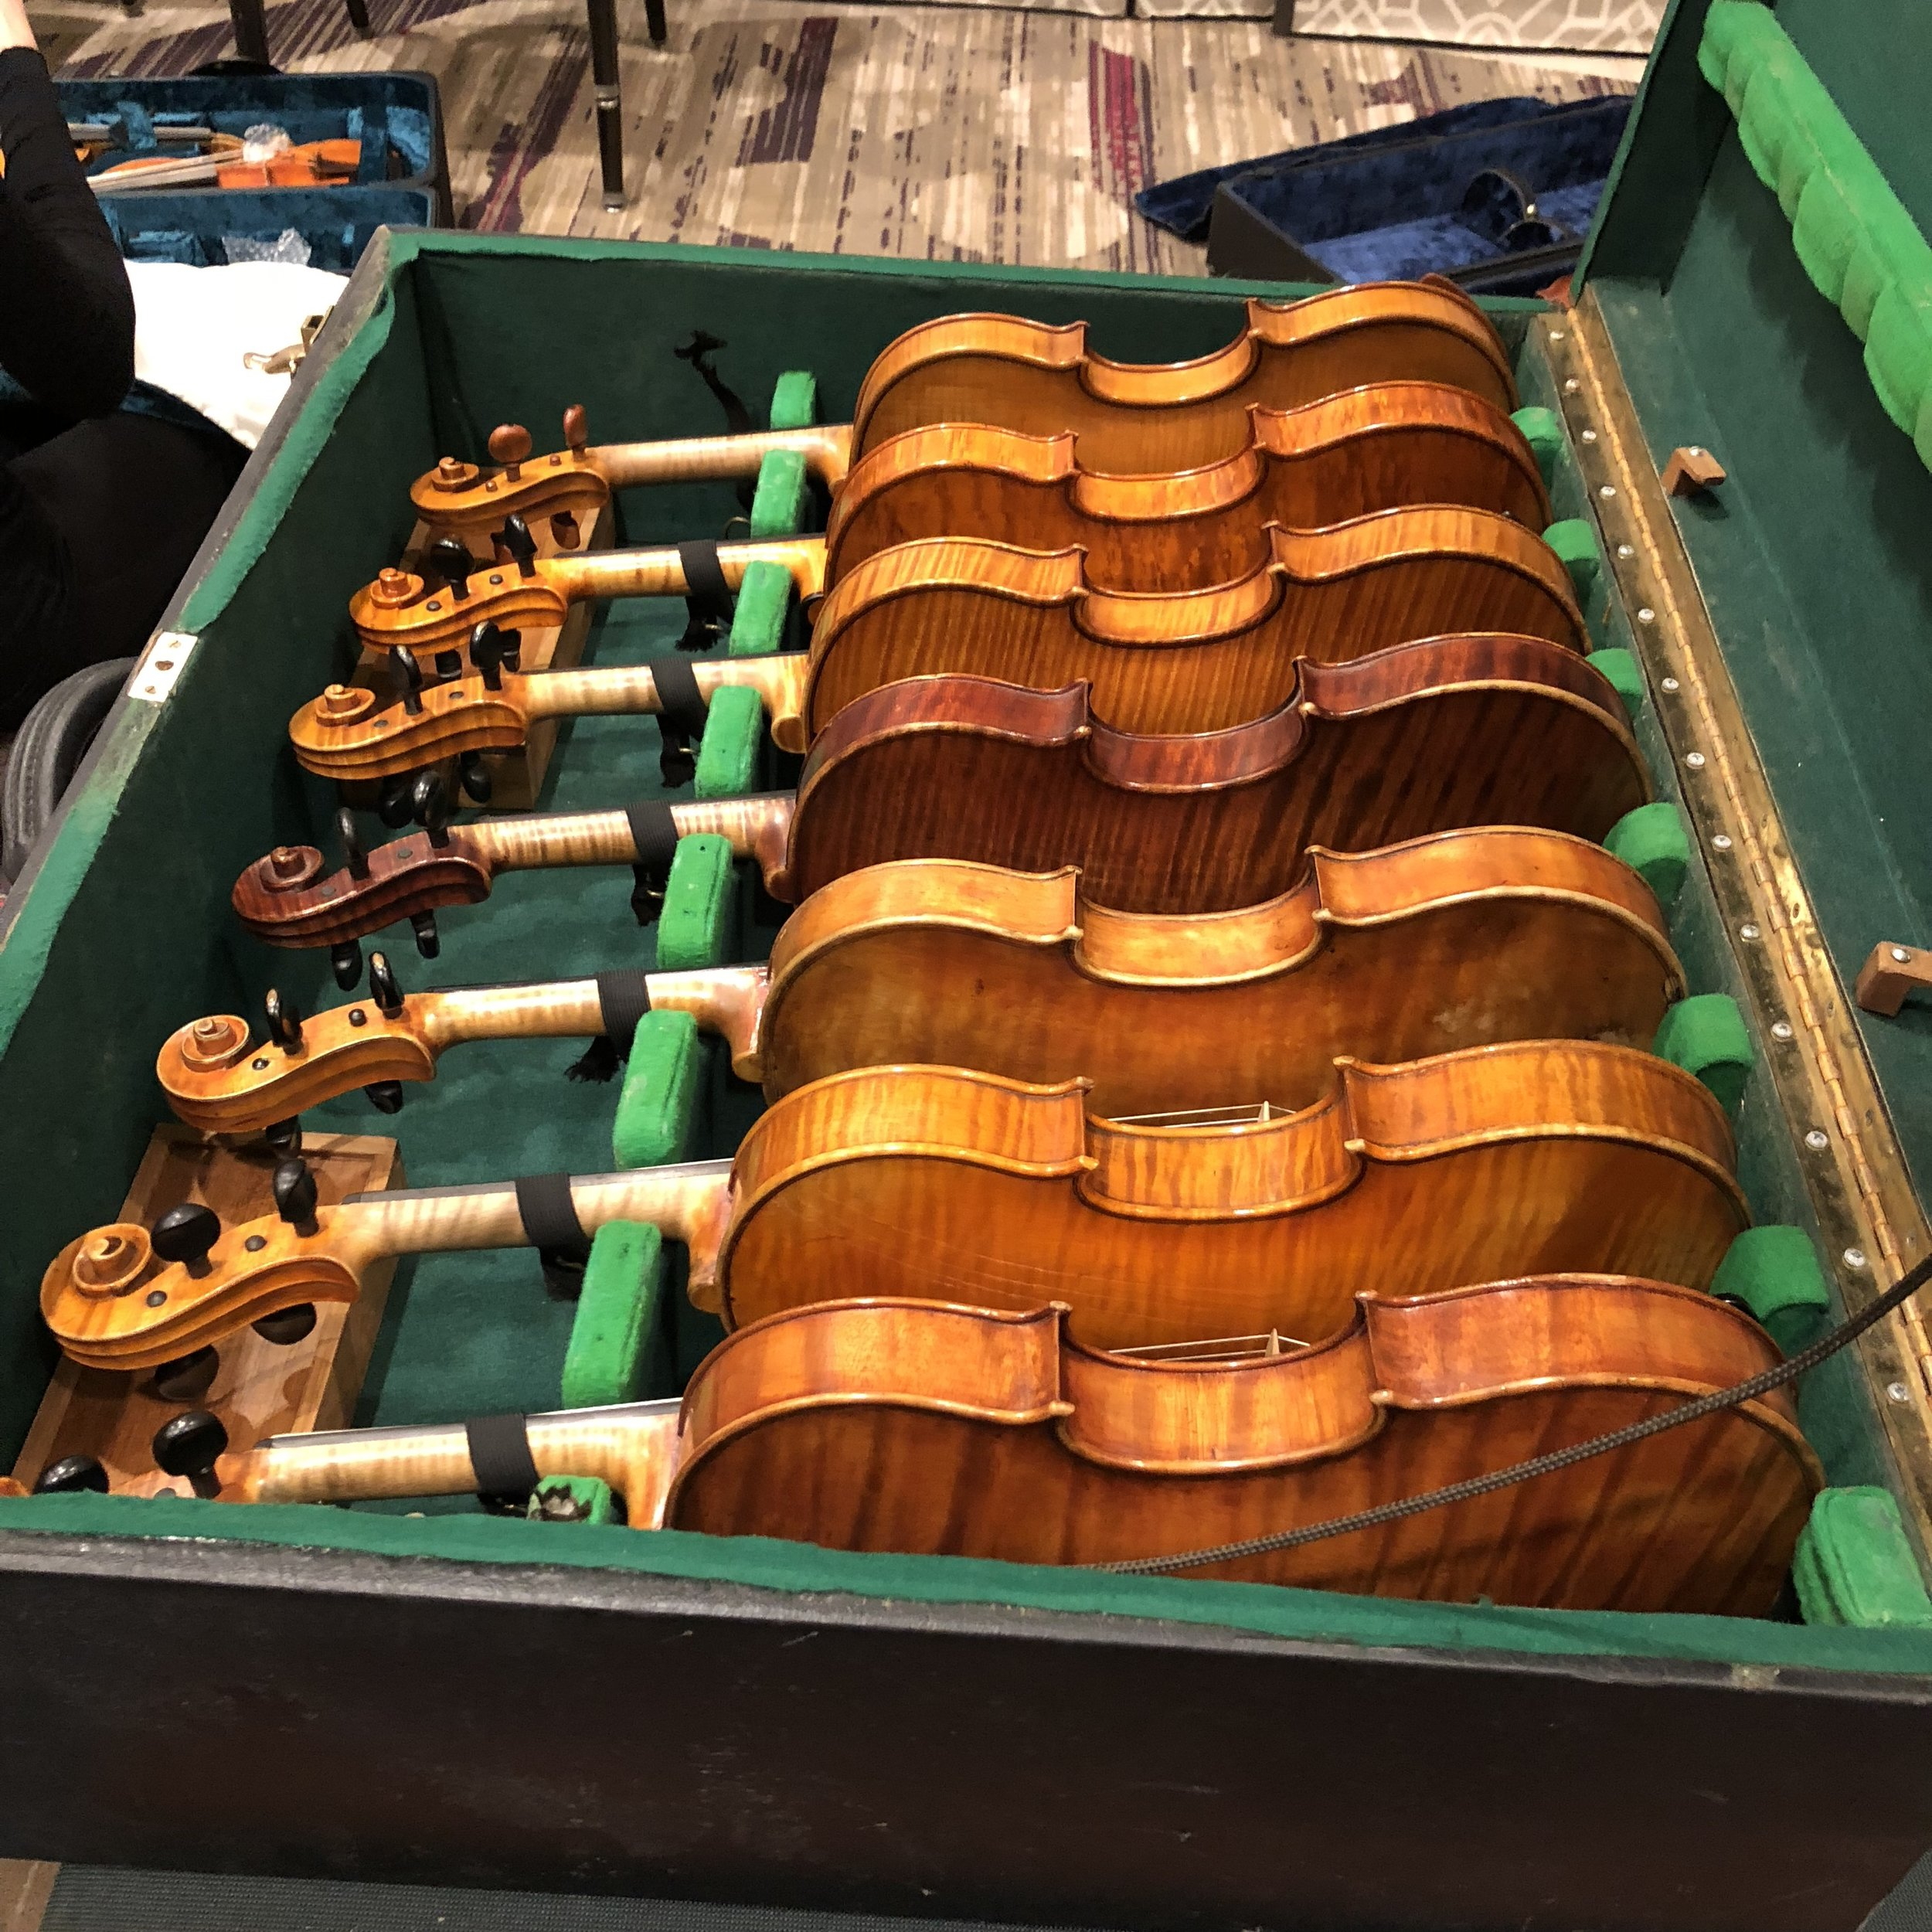 David Bromberg's Collection of American Violins on Display at the Violin Society of America (VSA) Convention in Washington DC in November 2017.